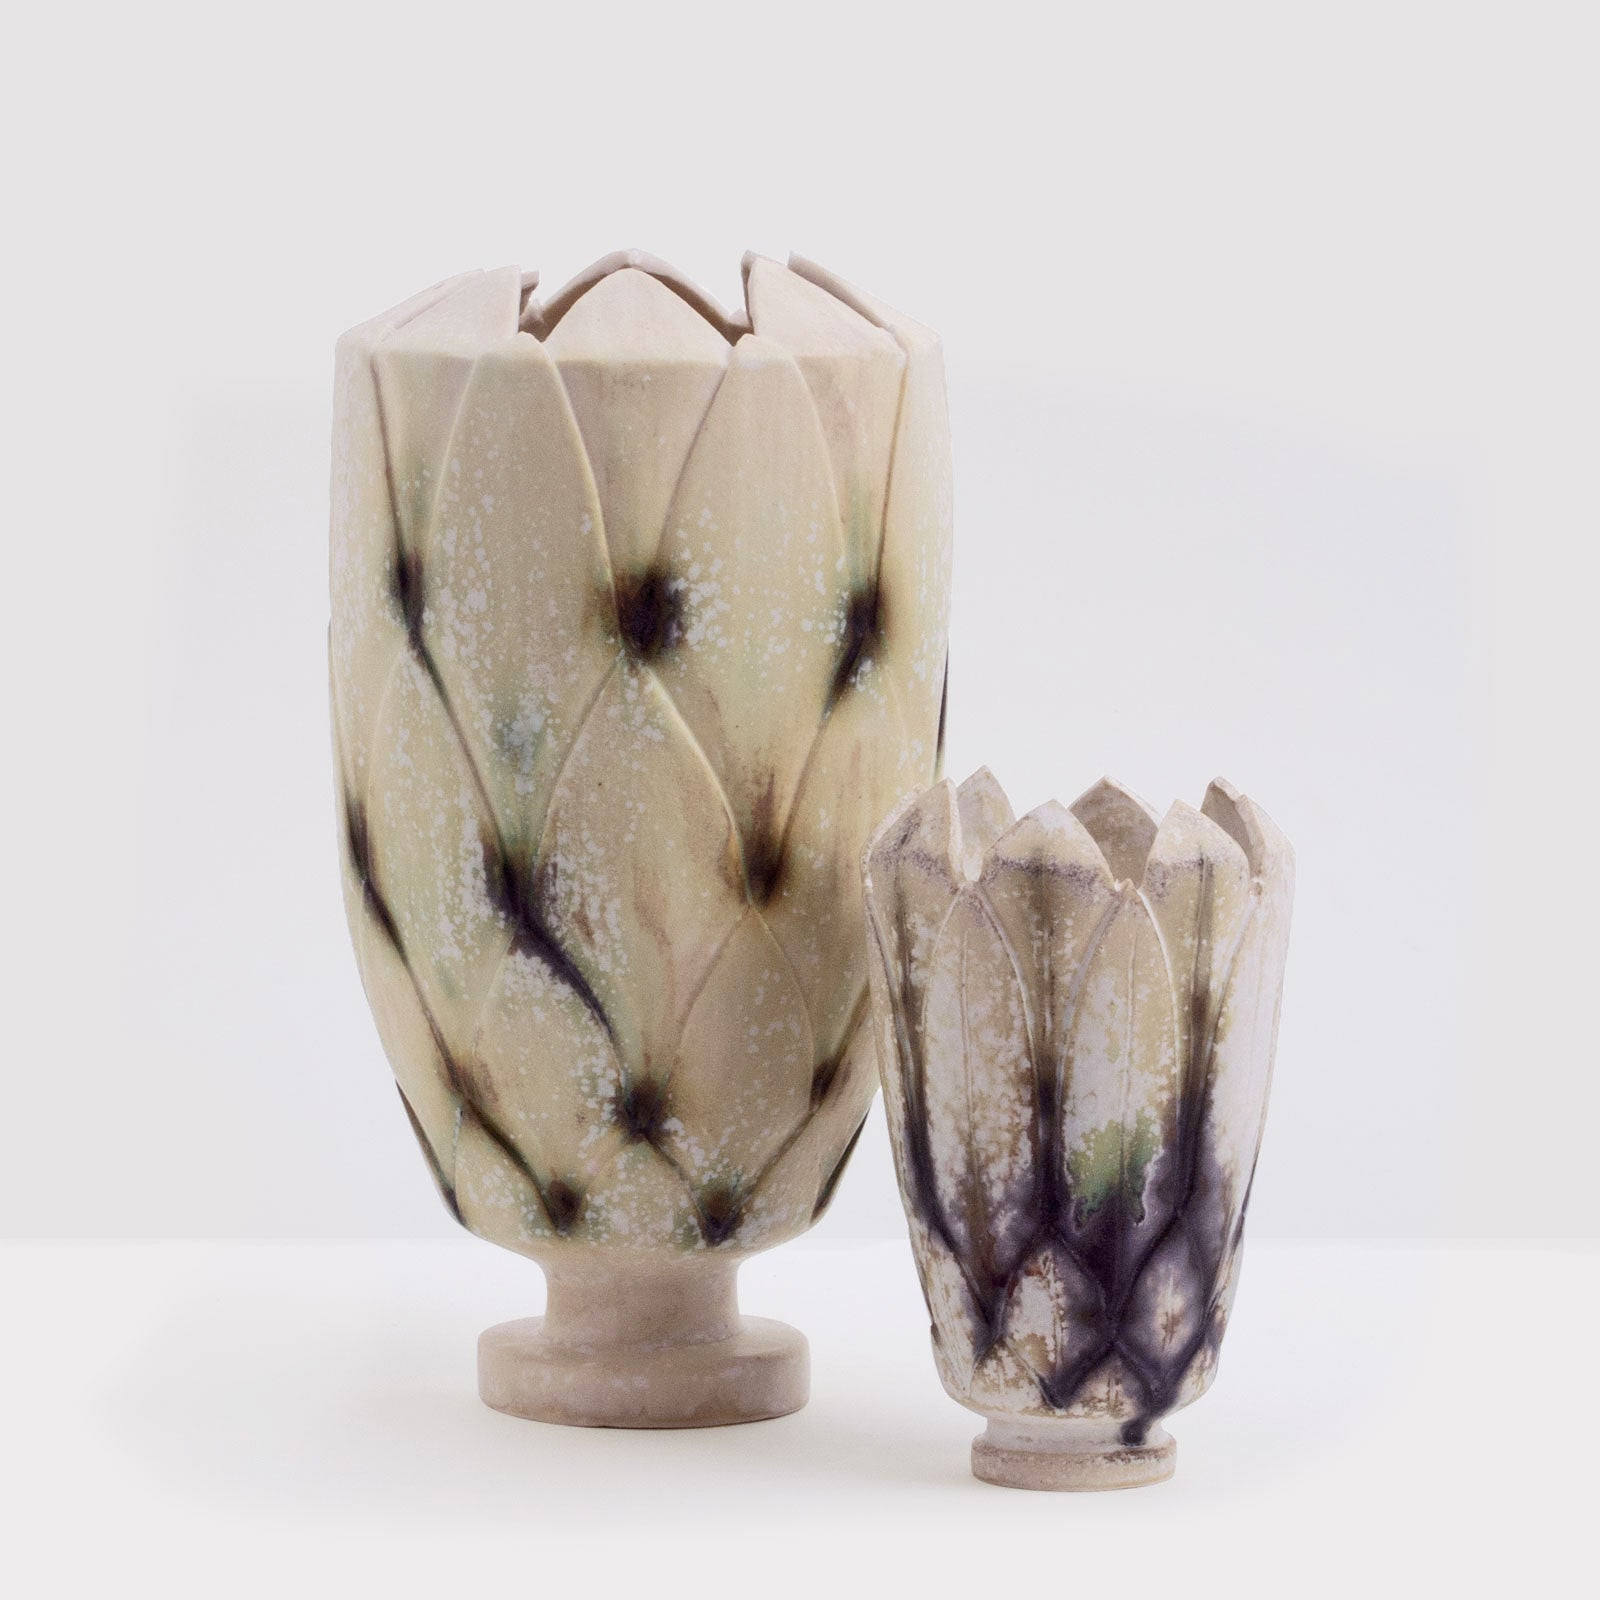 Handmade Protea pot in shell by Caro Gates